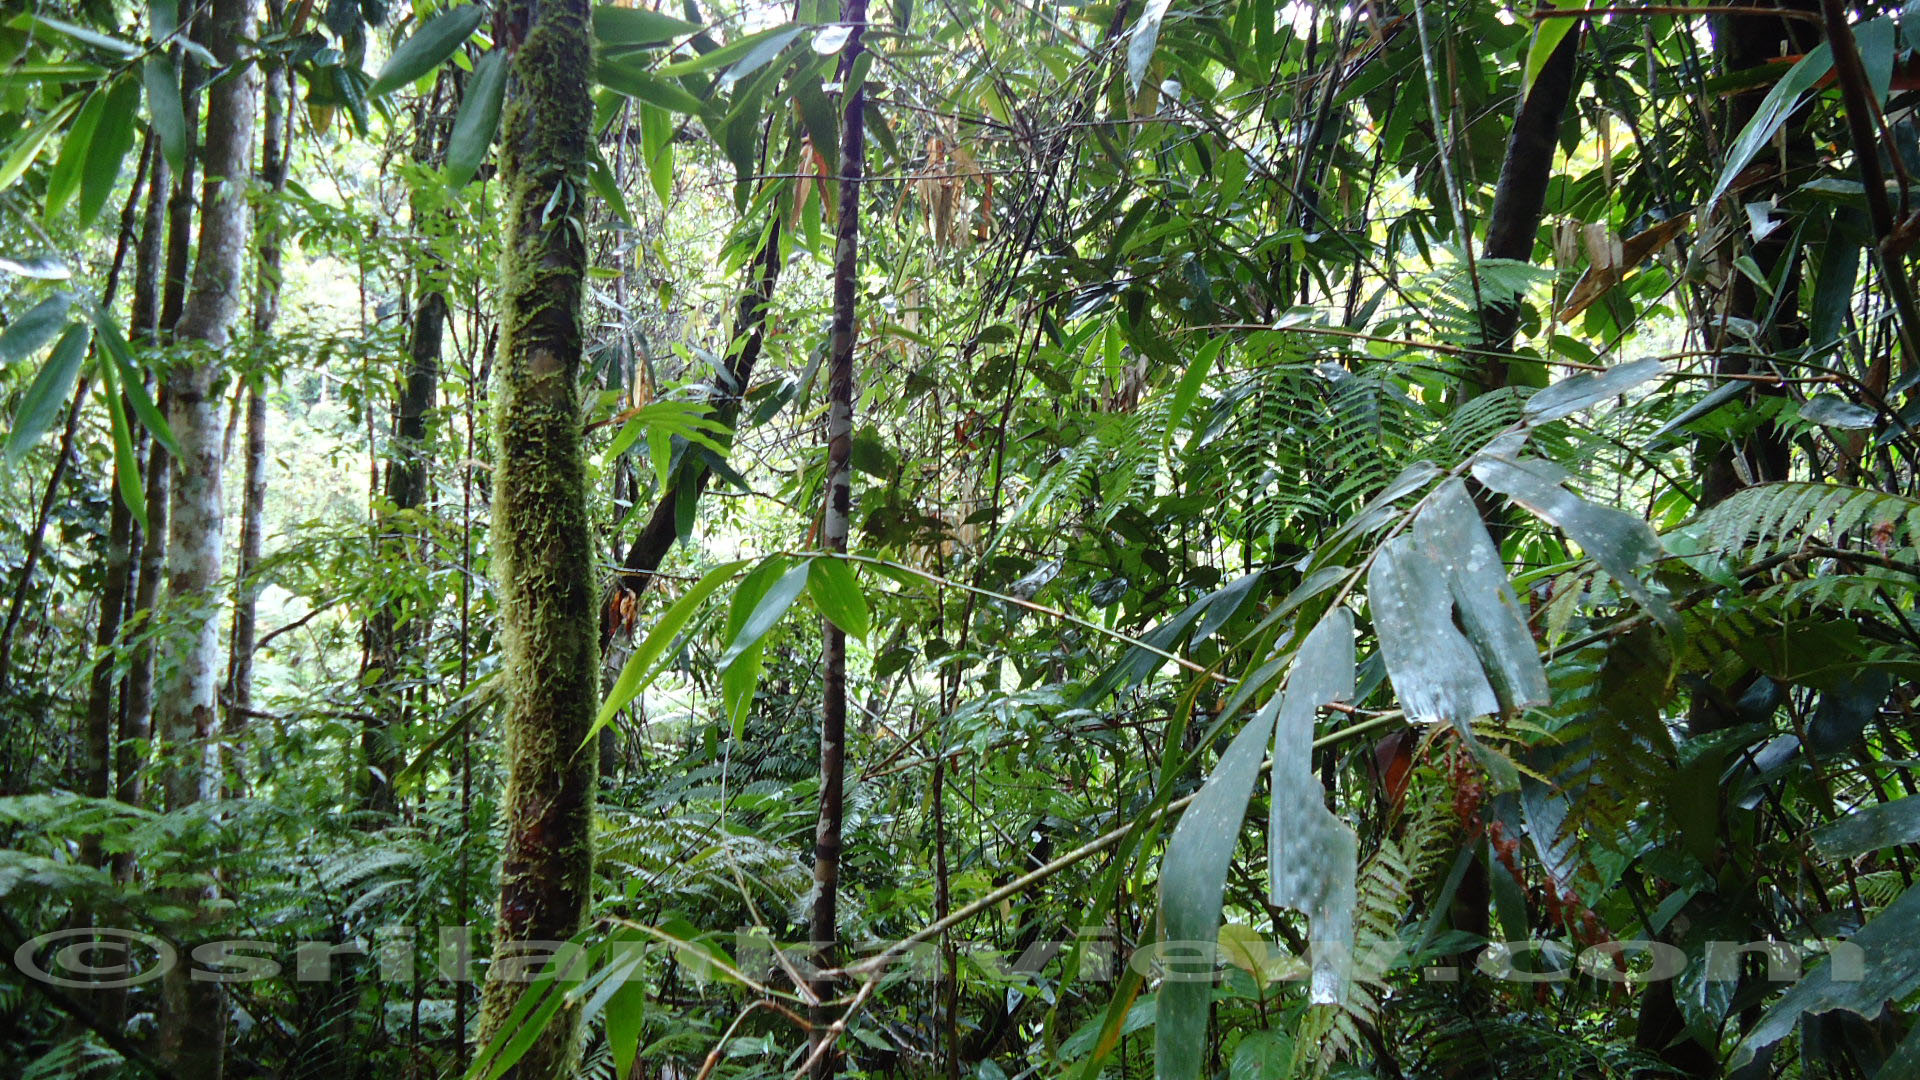 the survival of the rainforests depends on human compassion You hear so much about saving the whales and the rainforests,  the urban wildlife society has never sought nor received funding, and their survival depends upon it.